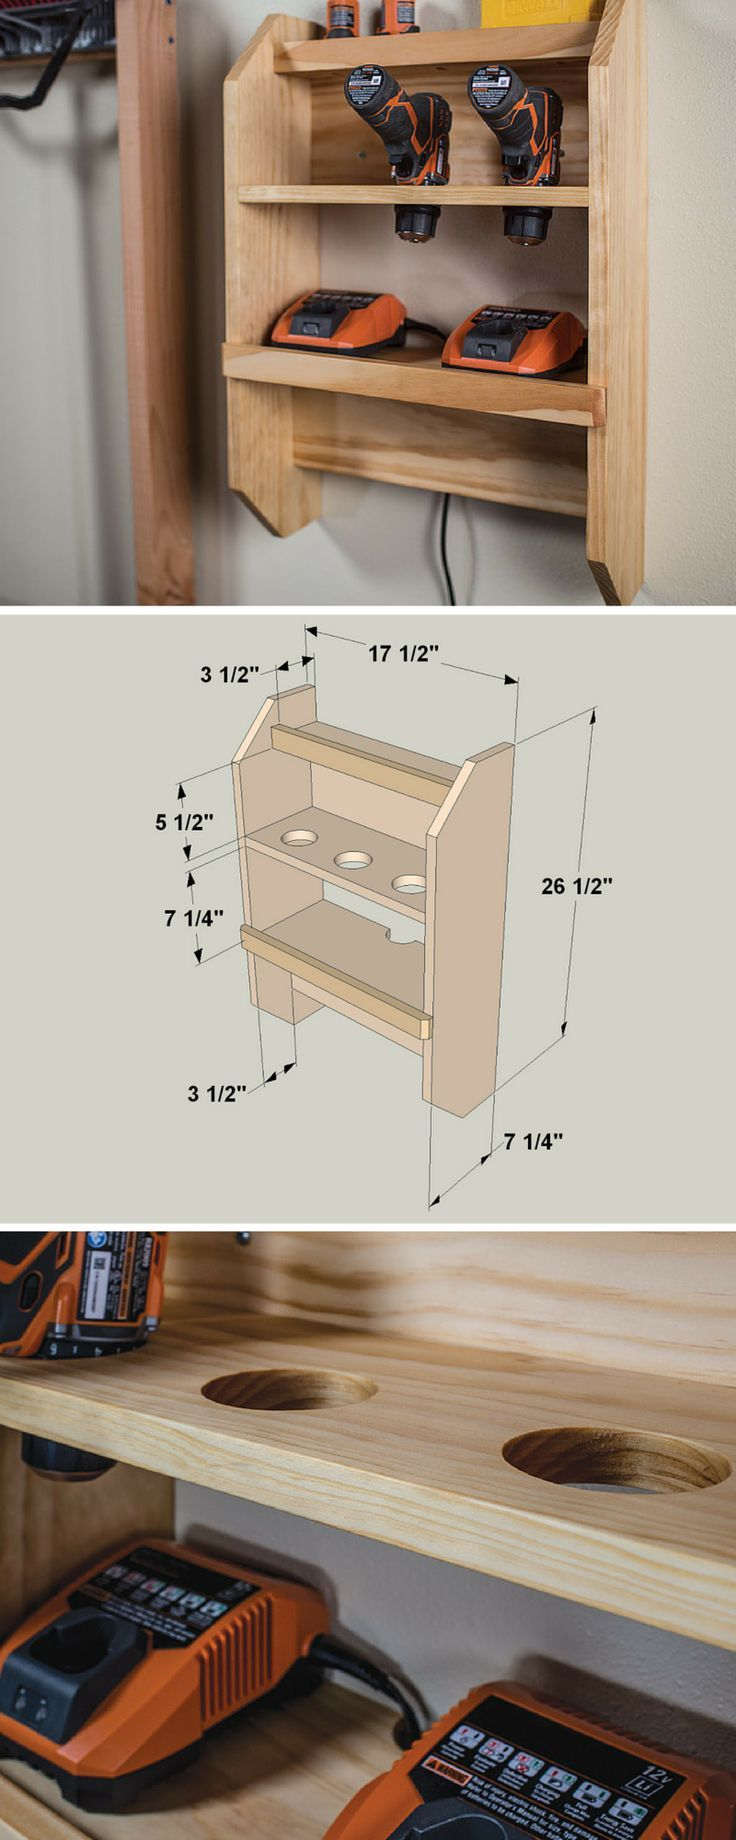 Cool Woodworking Tasks WoW Wood working Project